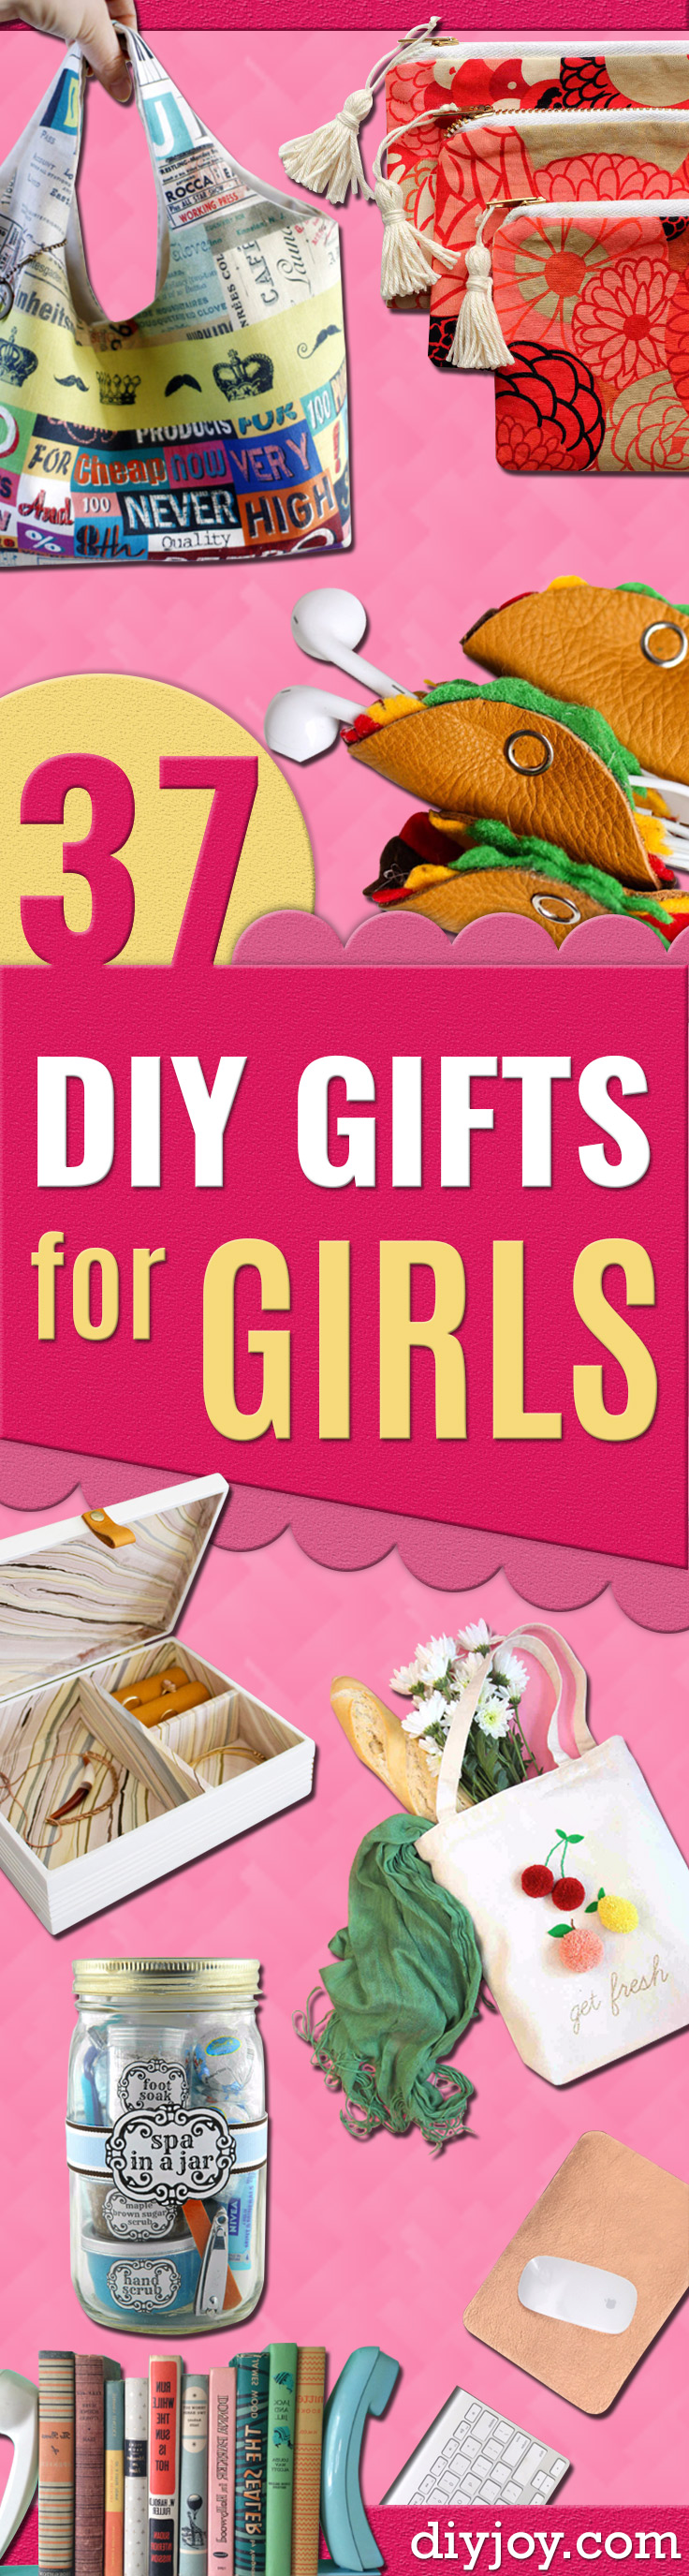 DIY Gifts for Girls - Easy Gift Ideas for Young and Older Girls, Teens and Teenagers - Cool Room and Home Decor for Bedroom, Fashion, Jewelry and Hair Accessories - Cheap Craft Projects To Make For a Girl for Christmas Presents #diy #teencrafts #girlsgifts #christmasgifts